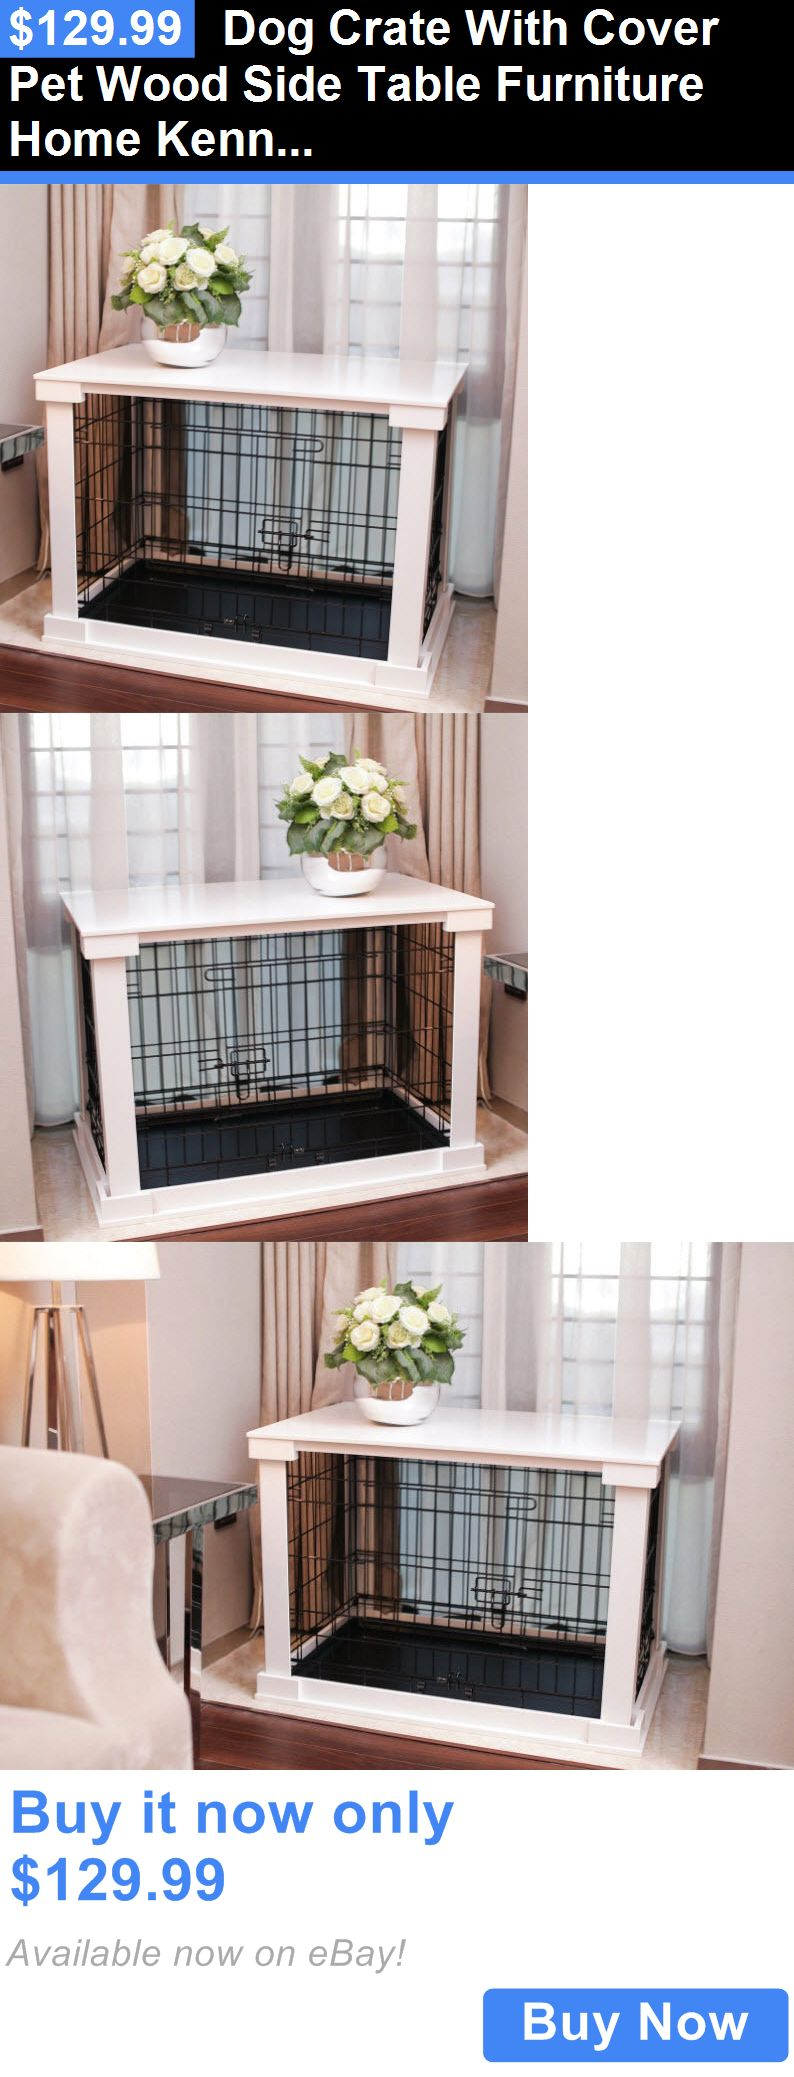 Animals Dog: Dog Crate With Cover Pet Wood Side Table Furniture Home Kennel Wire Cage Small BUY IT NOW ONLY: $129.99